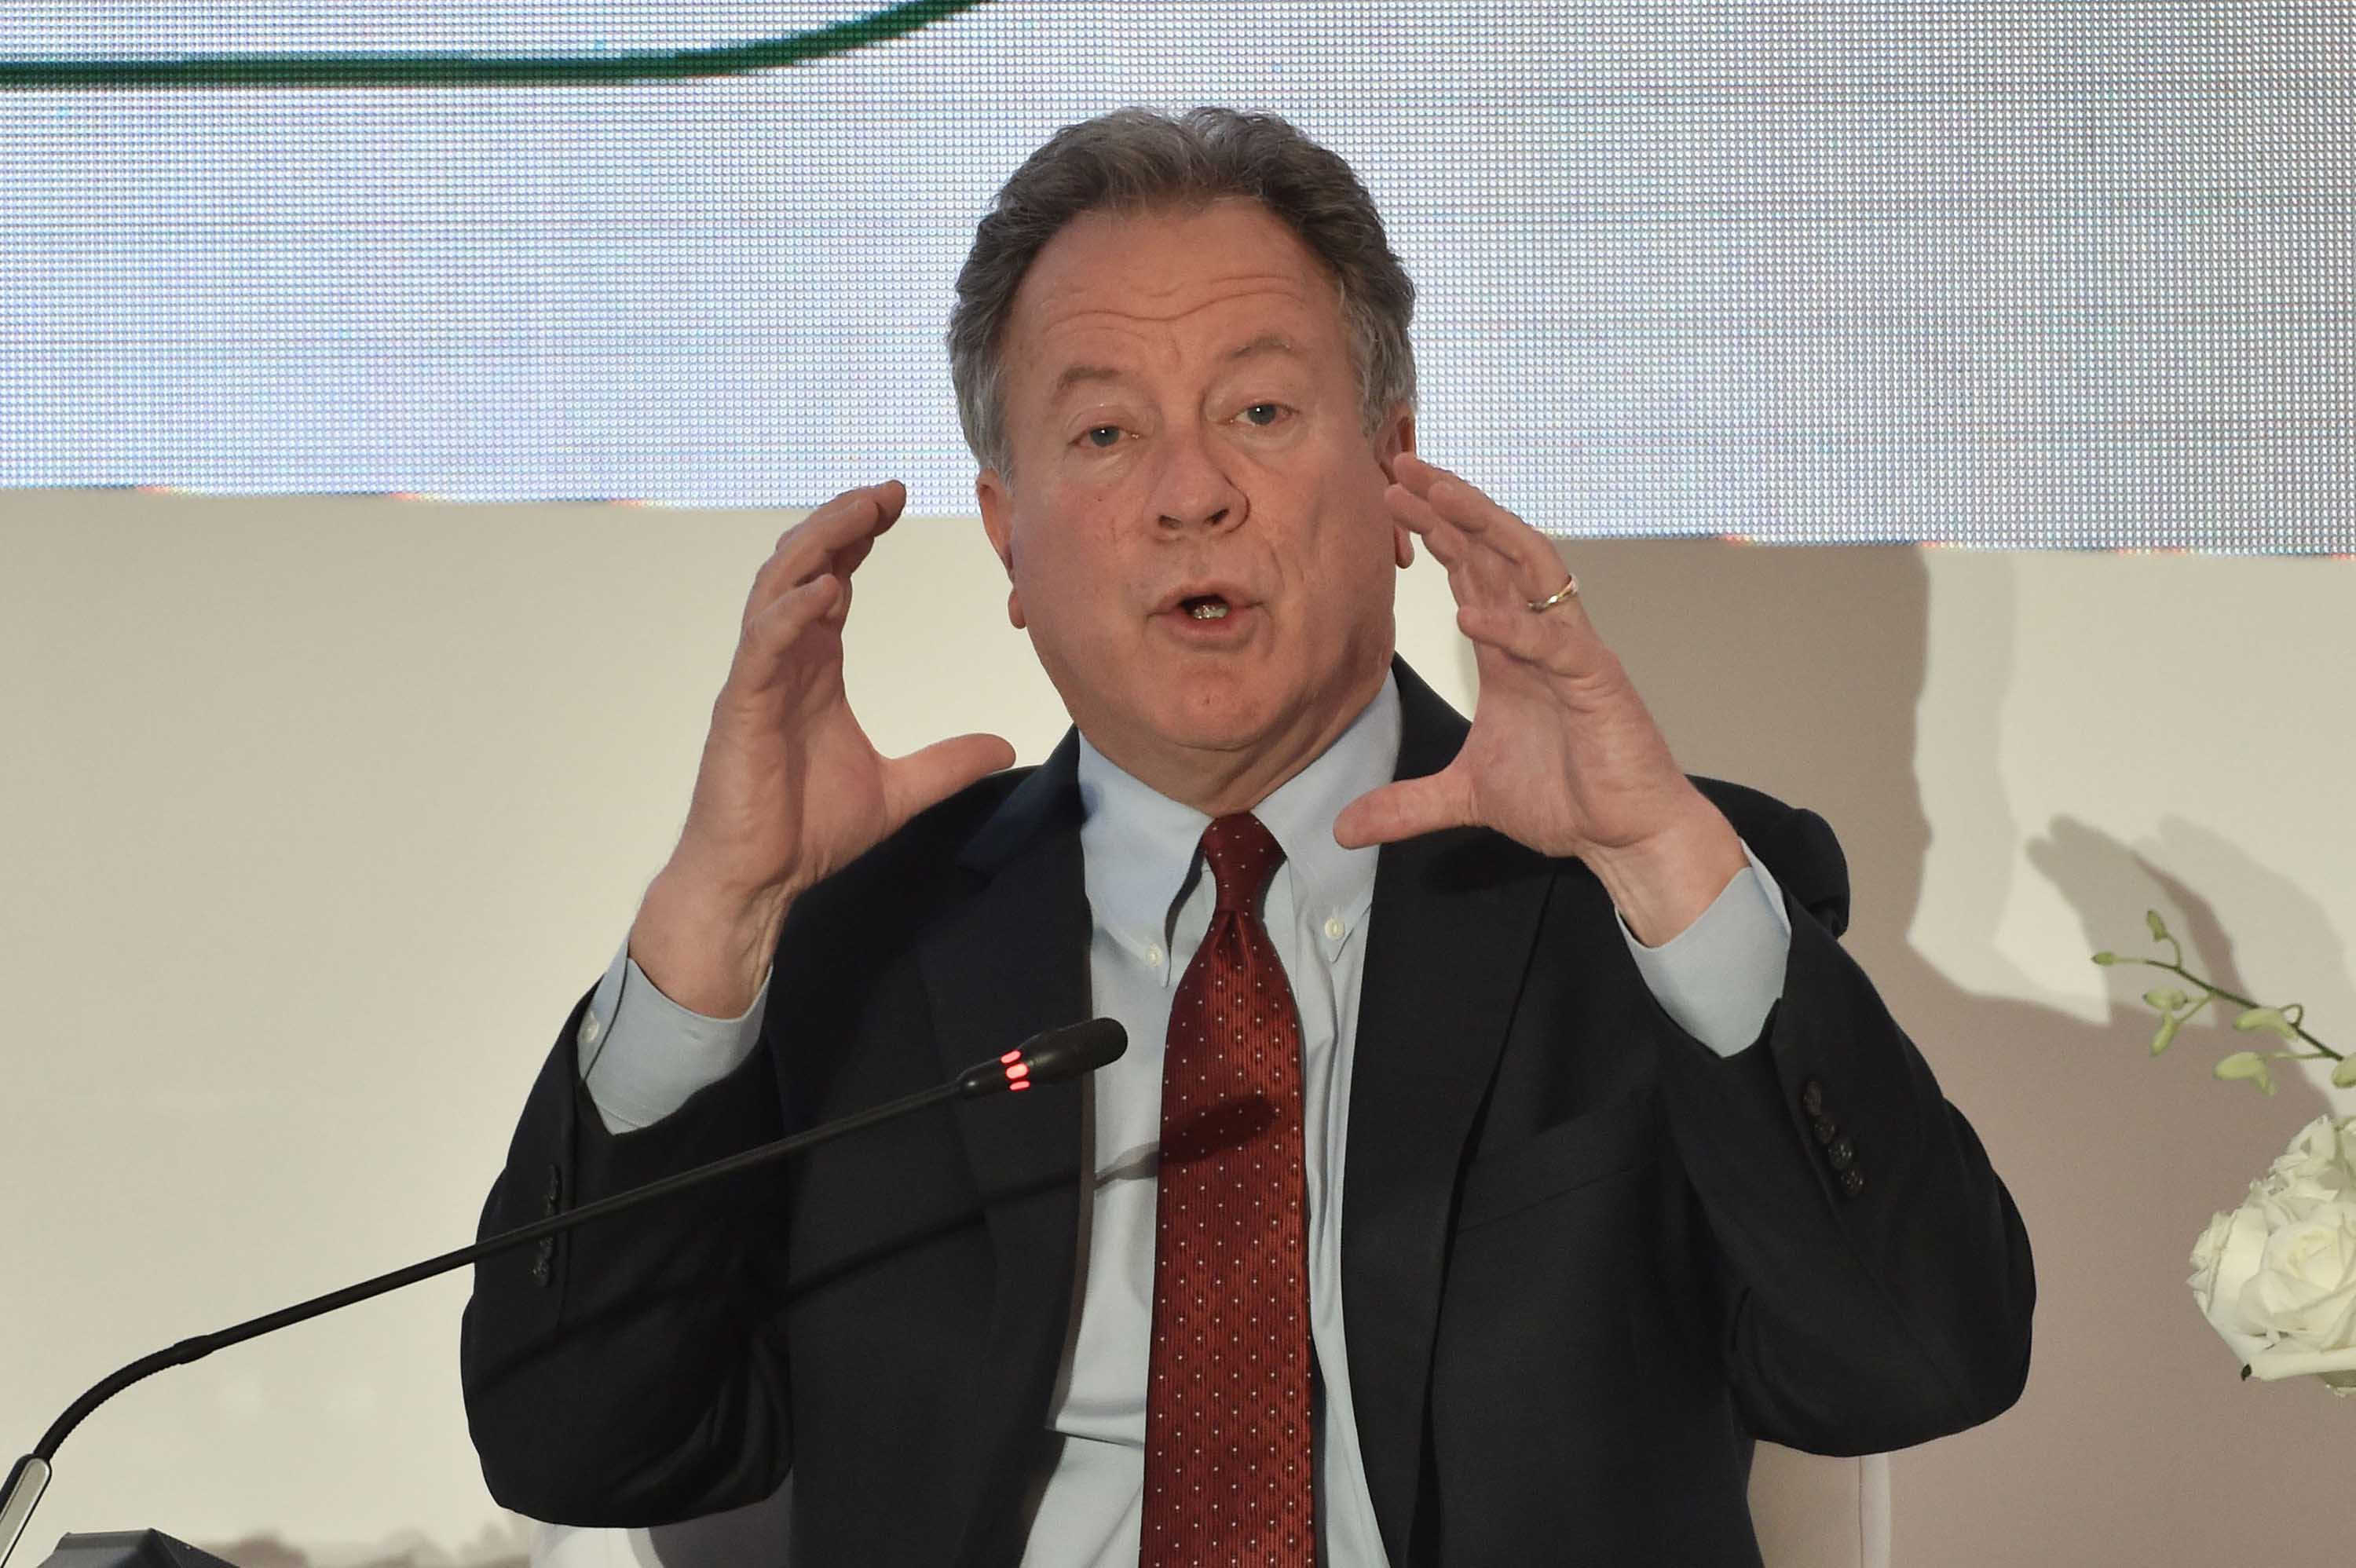 Executive Director of the World Food Programme David Beasley takes part in a panel discussion during the Riyadh International Humanitarian Forum in Saudi Arabia on March 1.